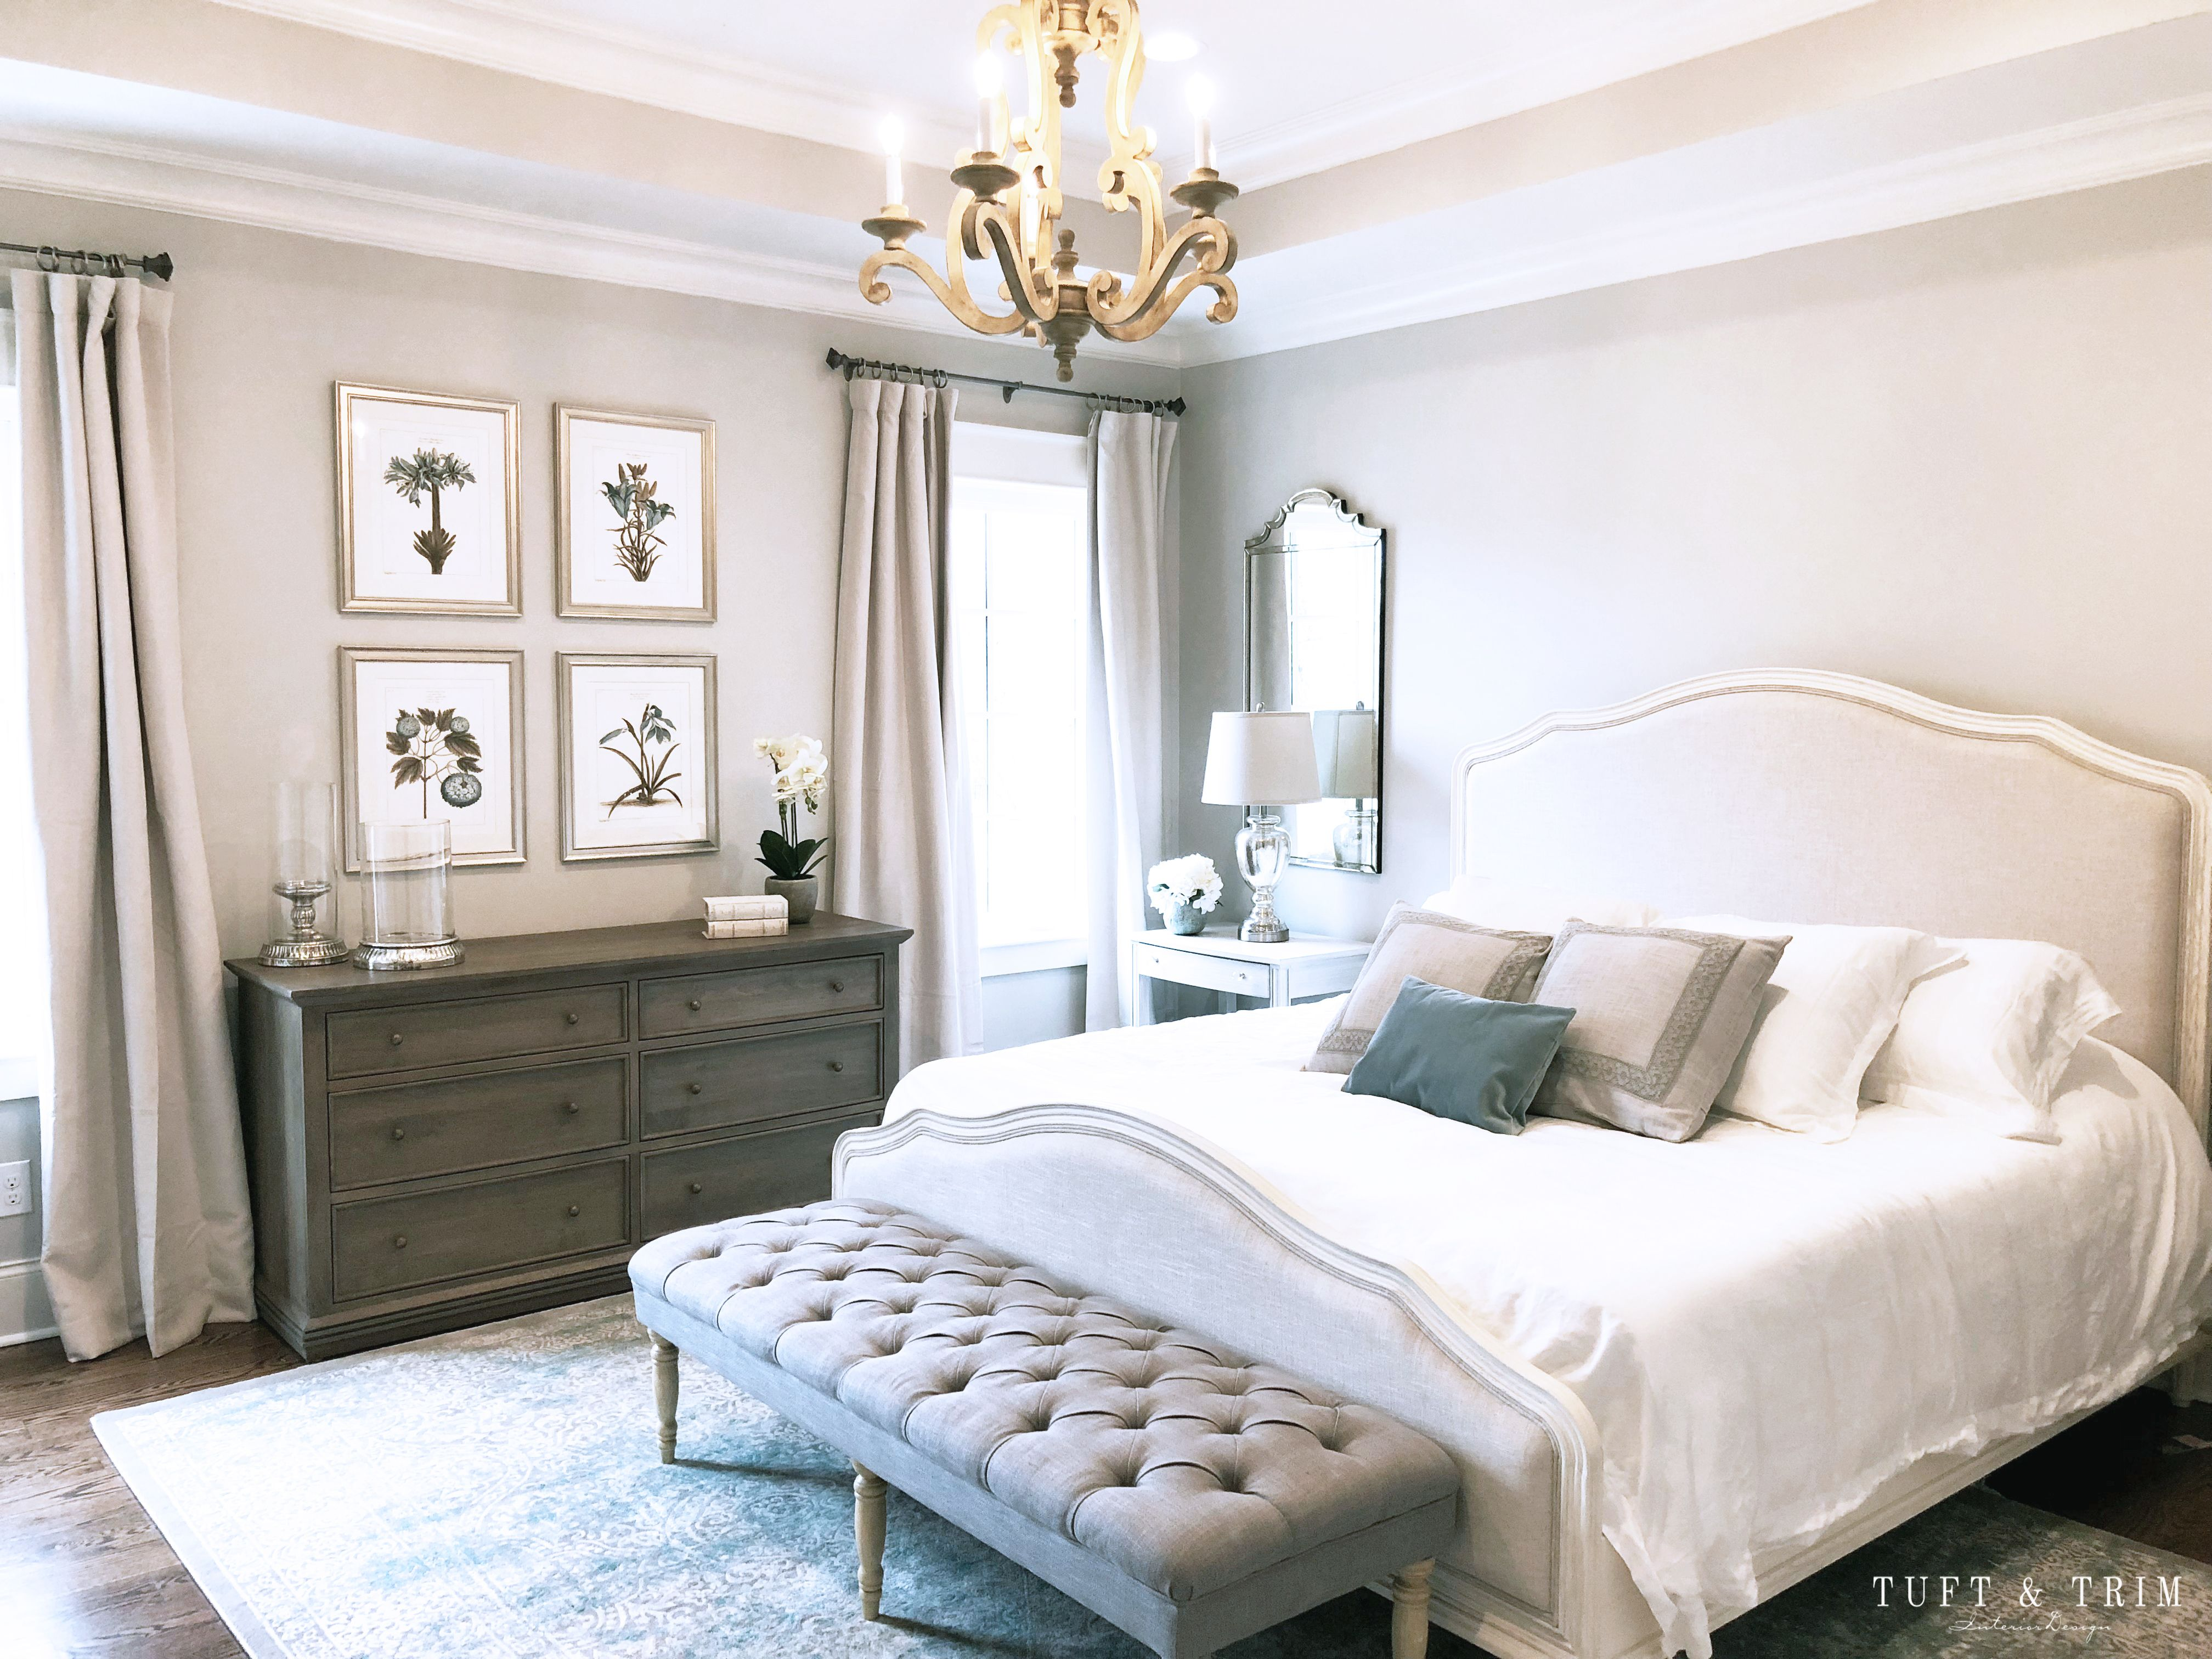 French Chic Bedroom E Design Tuft Trim French Country Master Bedroom Country Master Bedroom Elegant Bedroom